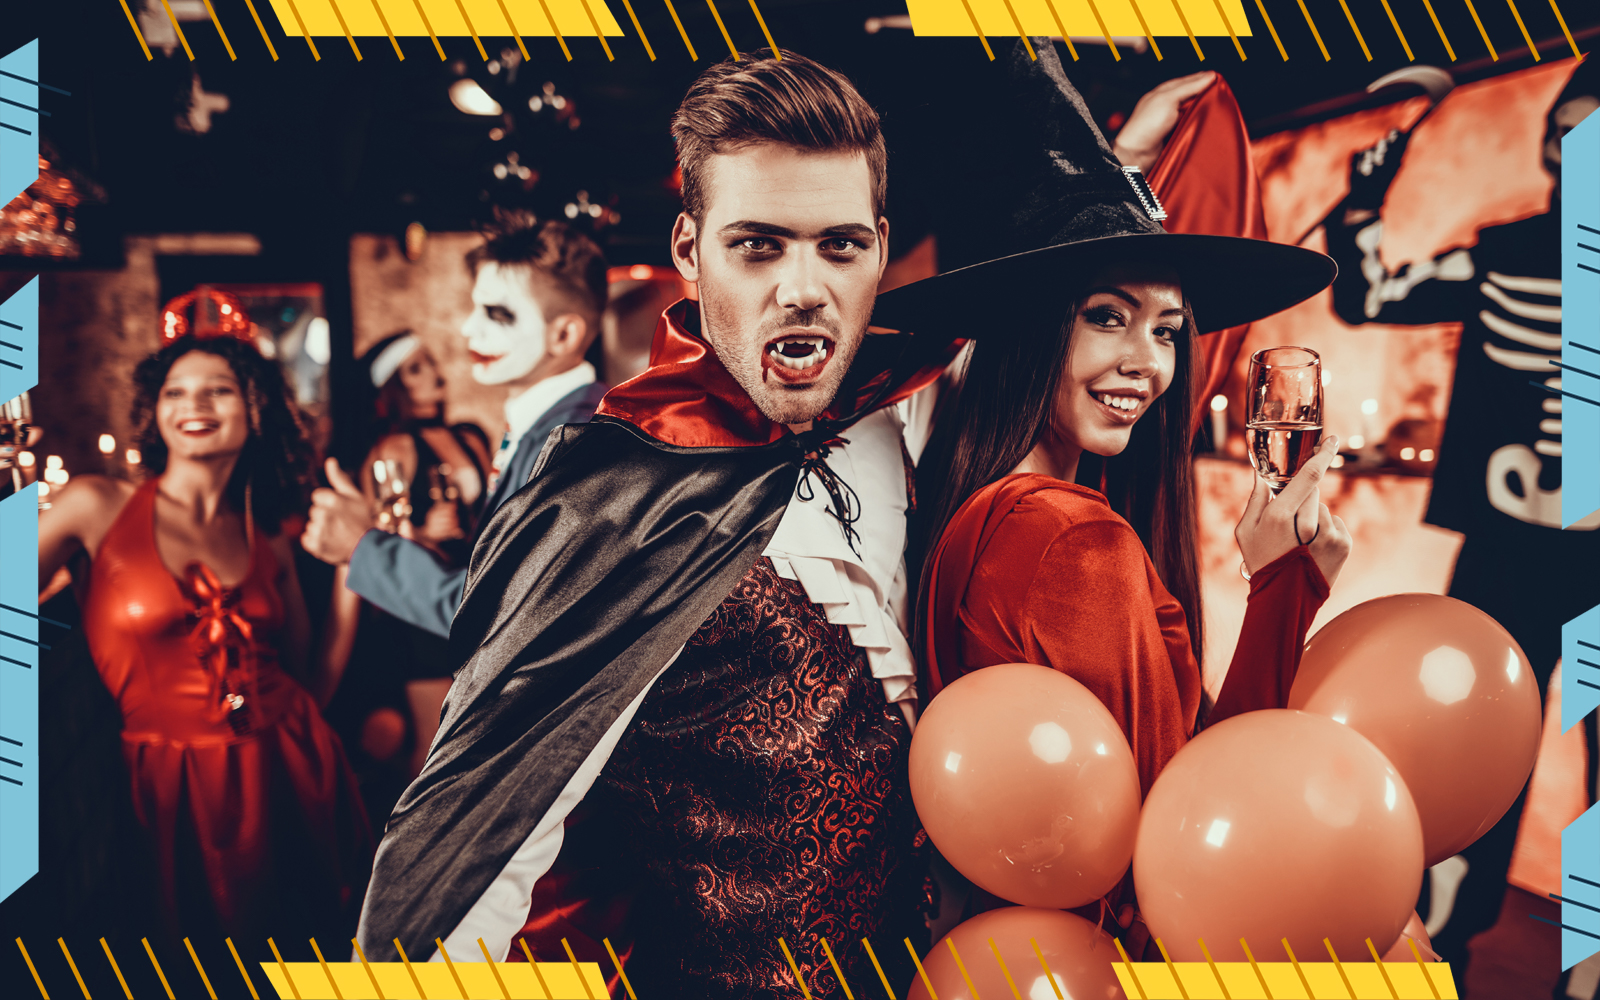 12/09/2021· october is just around the corner, which means time is quickly winding down to find the best halloween costume for 2021! The 30 Best Couples Costume Ideas For Halloween 2021 Spy